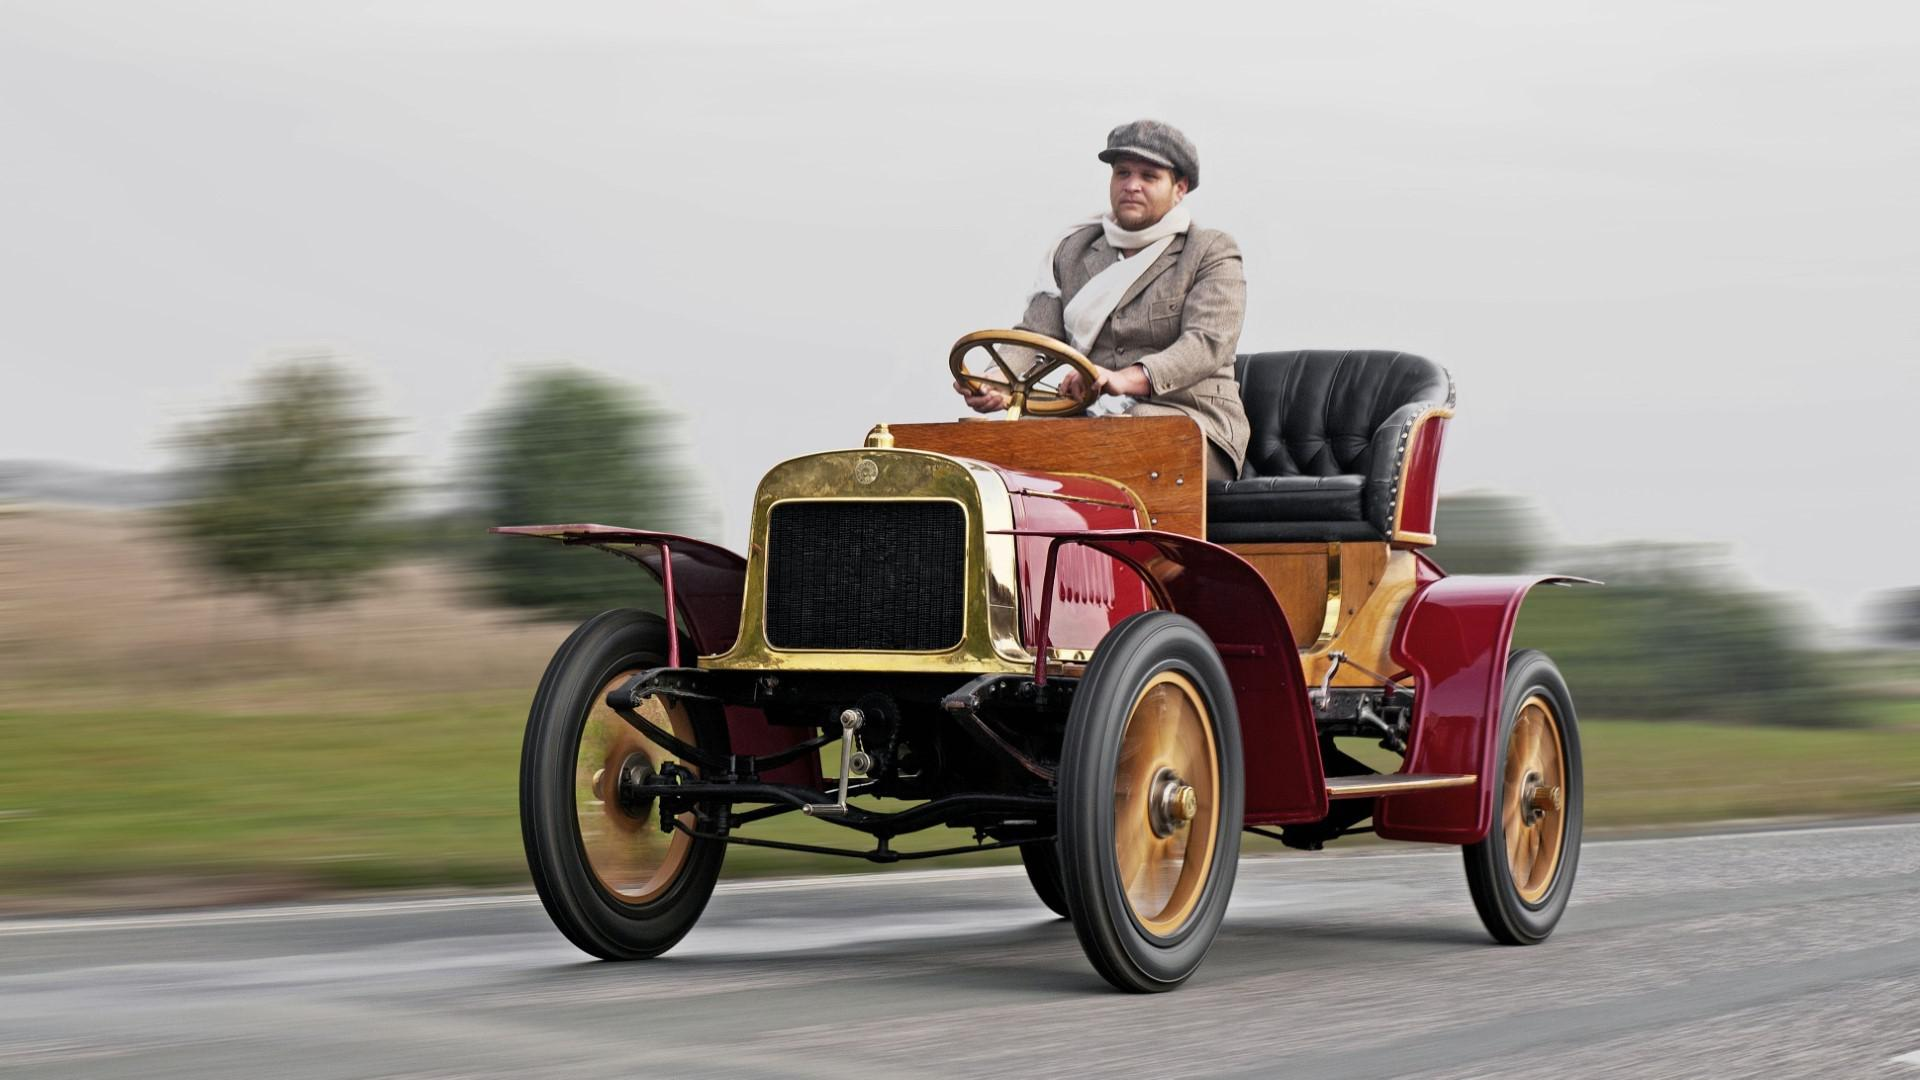 autoworld-museum-brussels-skoda-125-years-from-past-to-future-1387-4.jpg